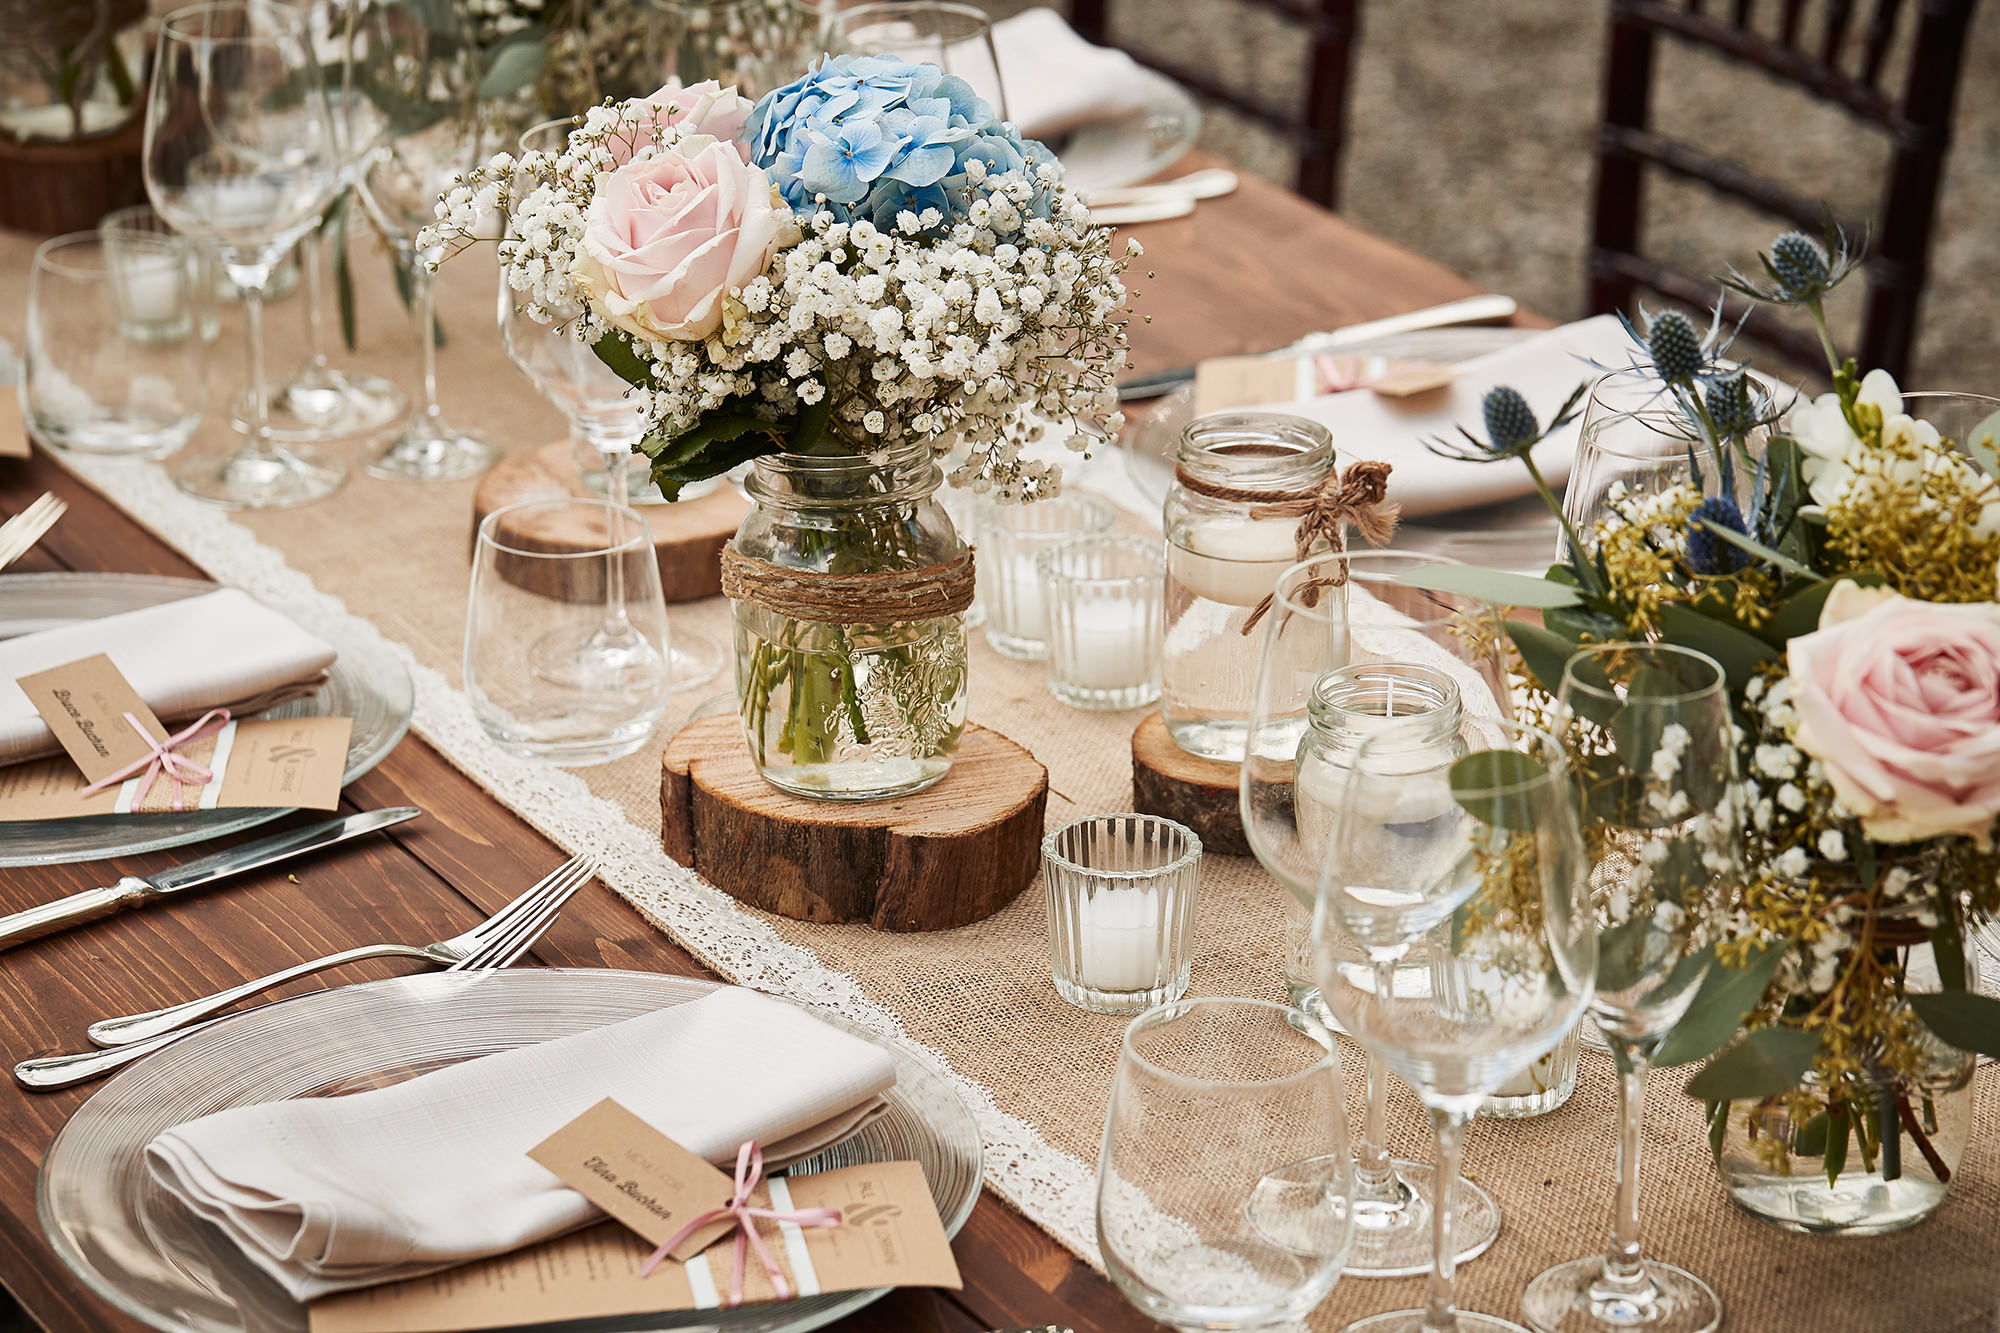 Suggested Gift For Wedding: HOW TO ORGANIZE THE TABLES FOR A WEDDING: THE PROPER